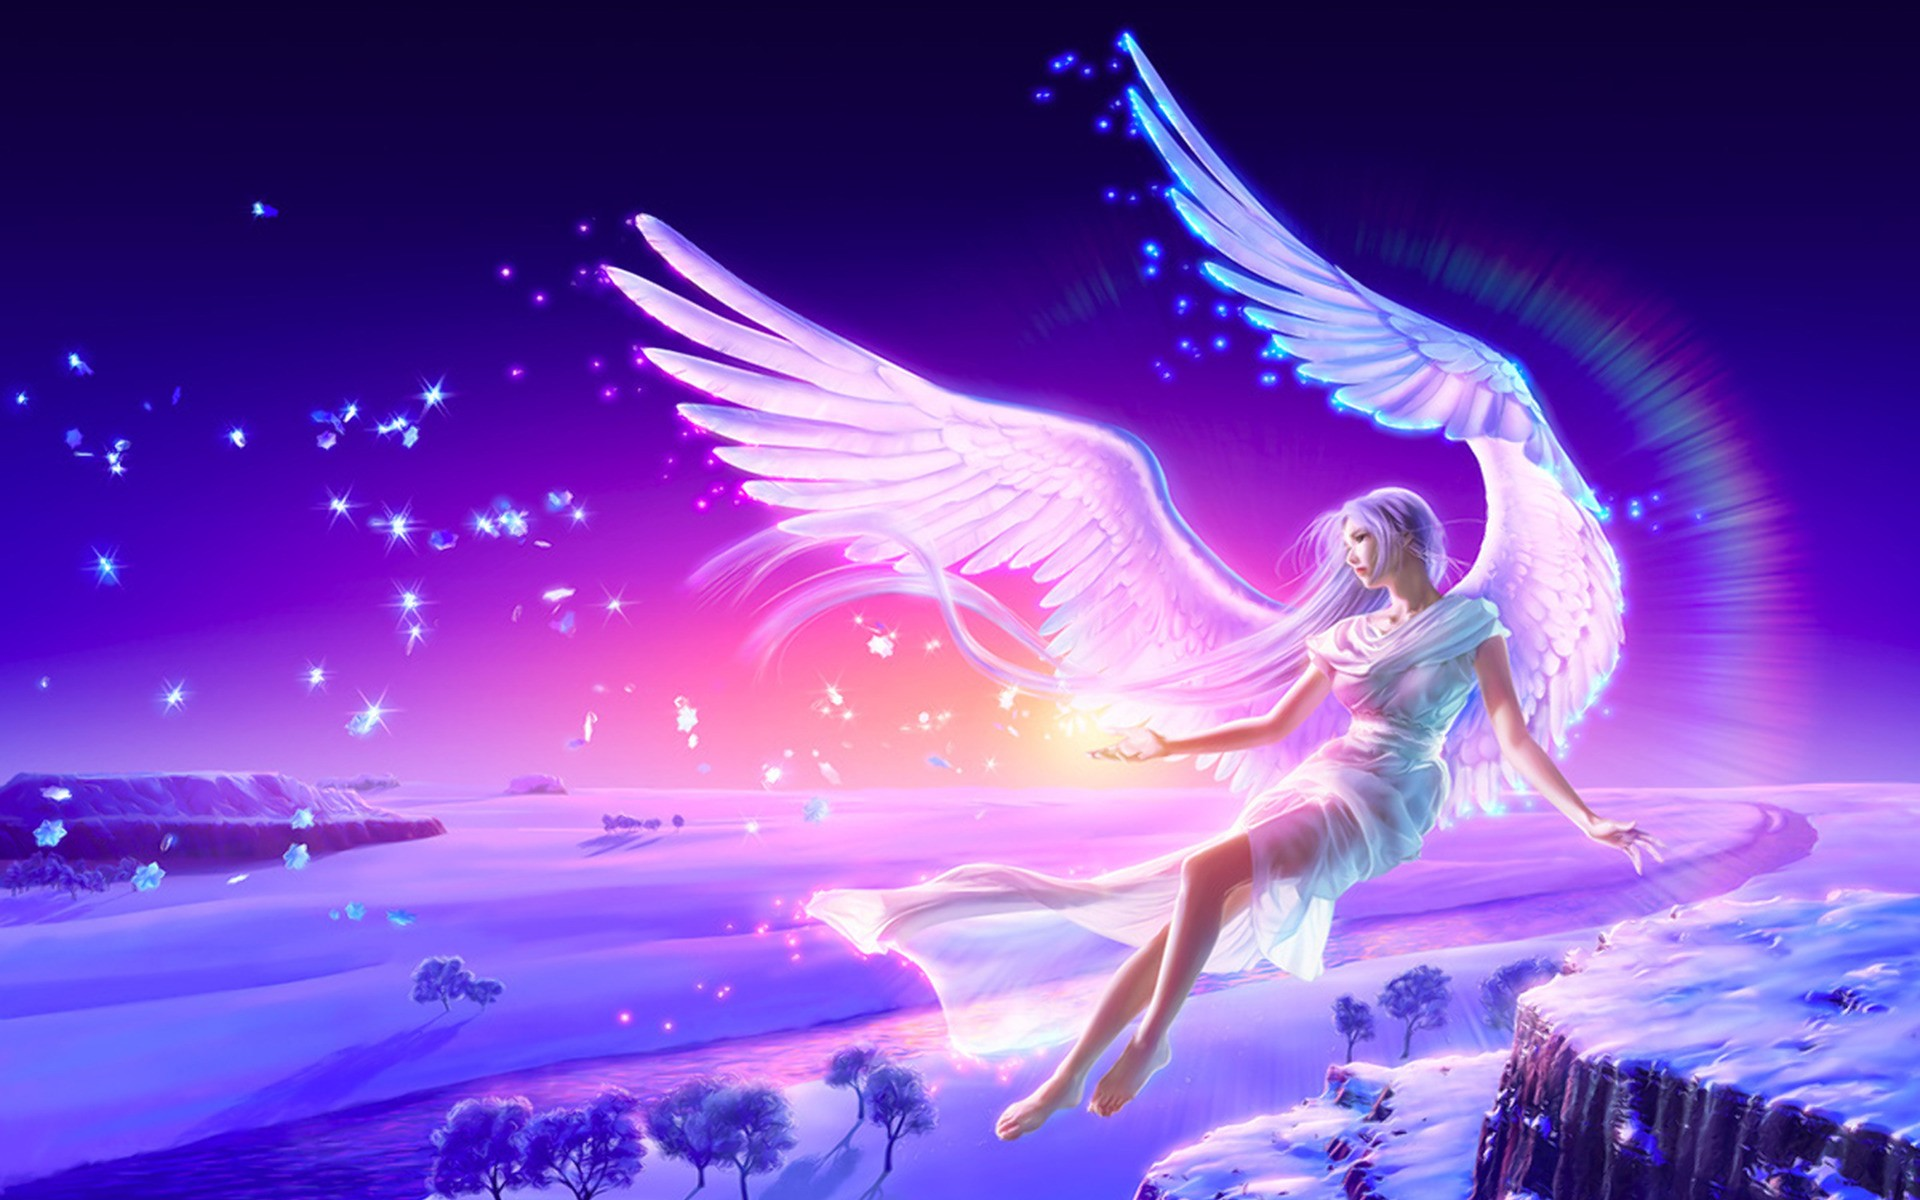 Communicating with angels sookton suki eleuterio 111 333 what does it mean angels fantasy00383089 buycottarizona